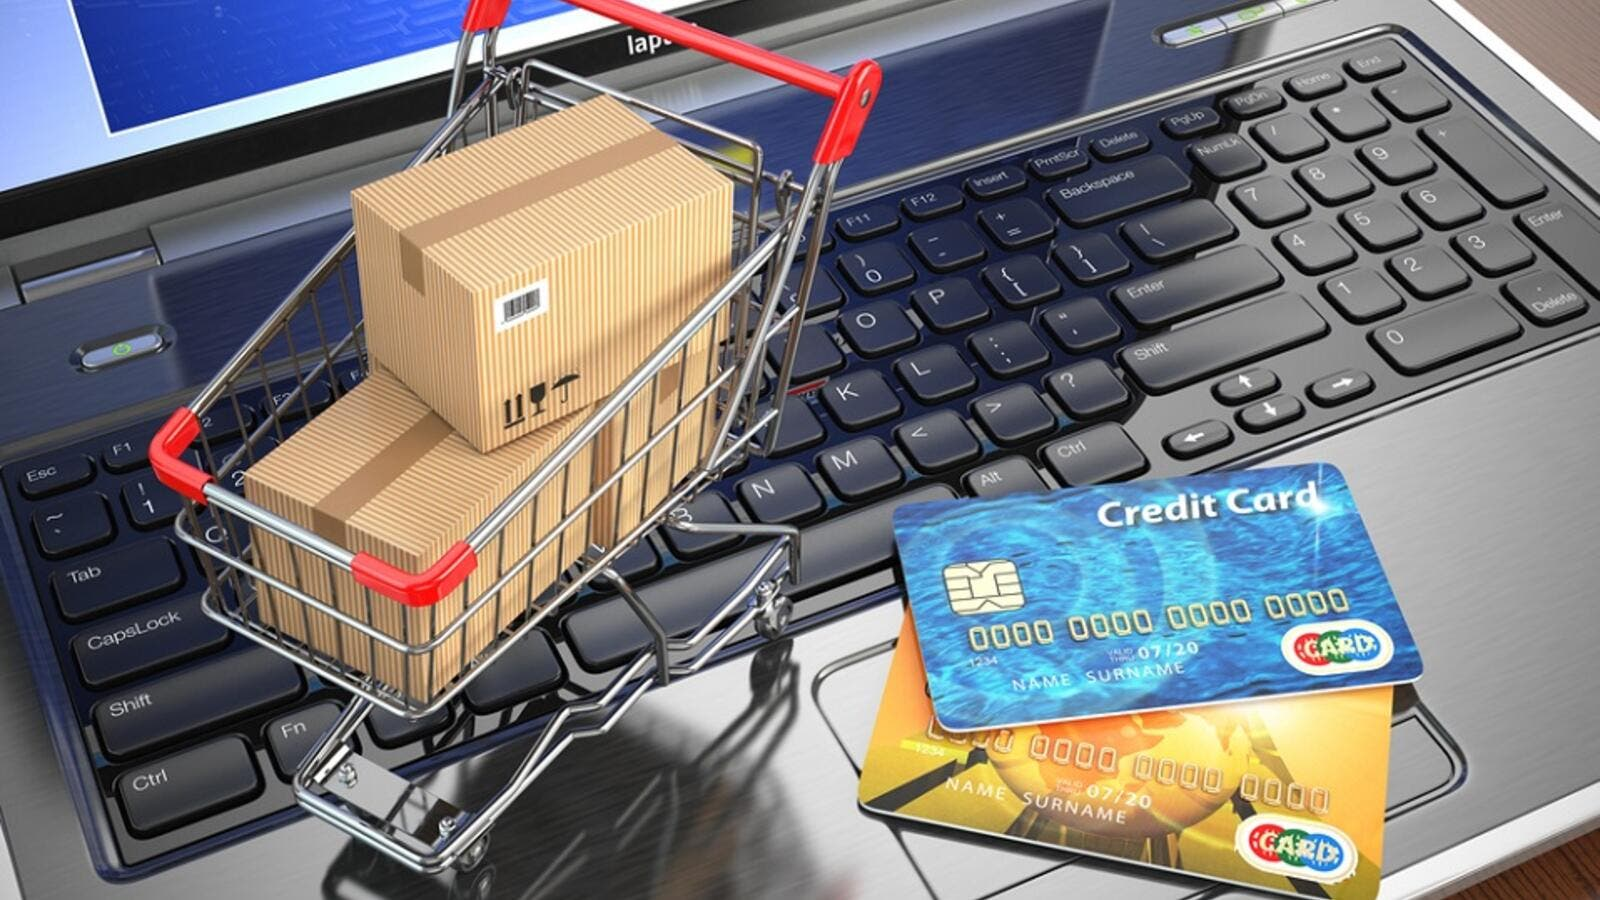 E-commerce is fuelling logistics opportunities and reputed logistics companies will grab the opportunities and grow their businesses in the UAE as well as in the region